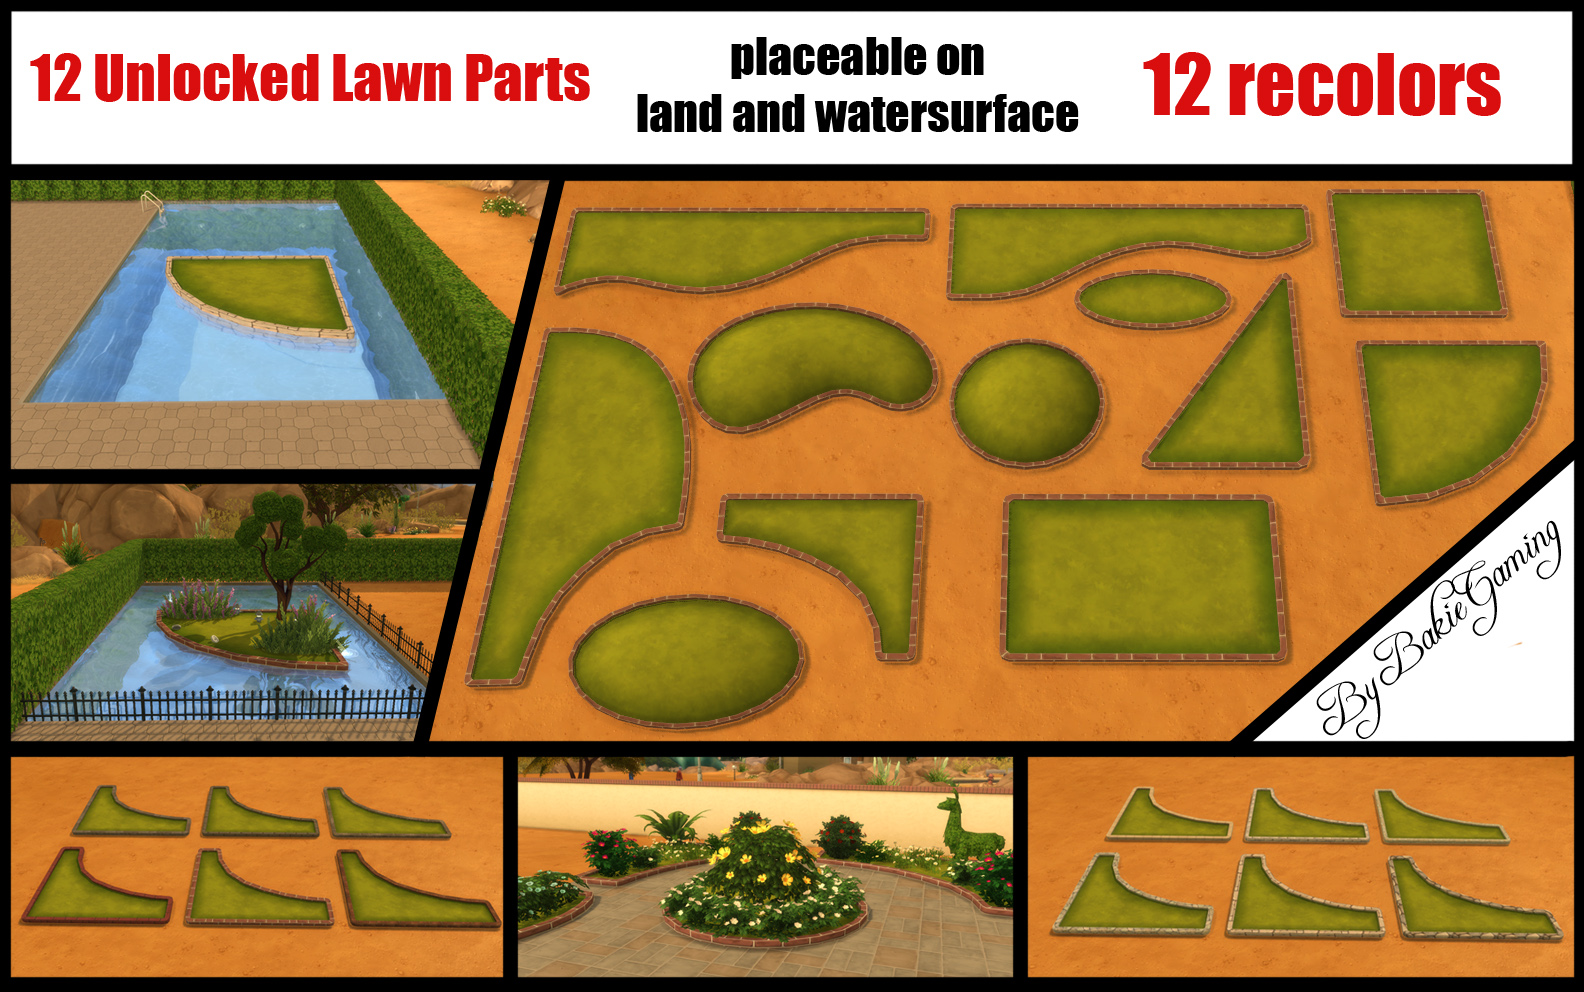 Unlocked Lawn Parts (12 parts) by Bakie